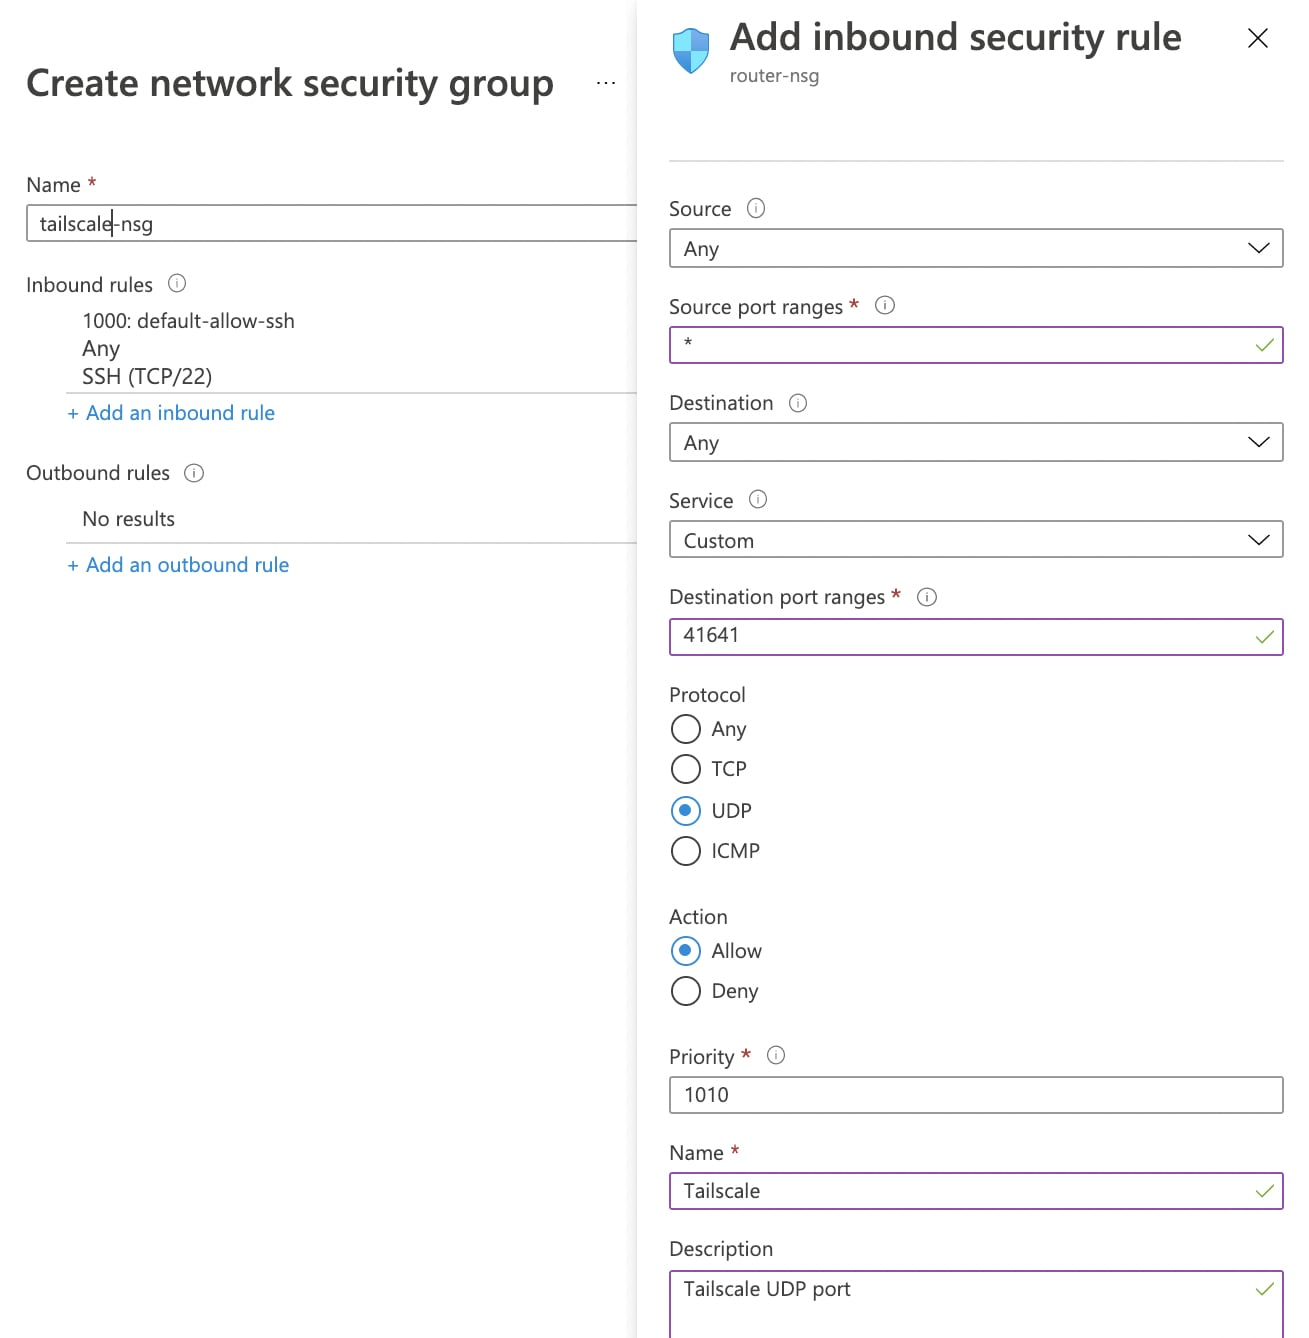 Network Security Group allow port 41641